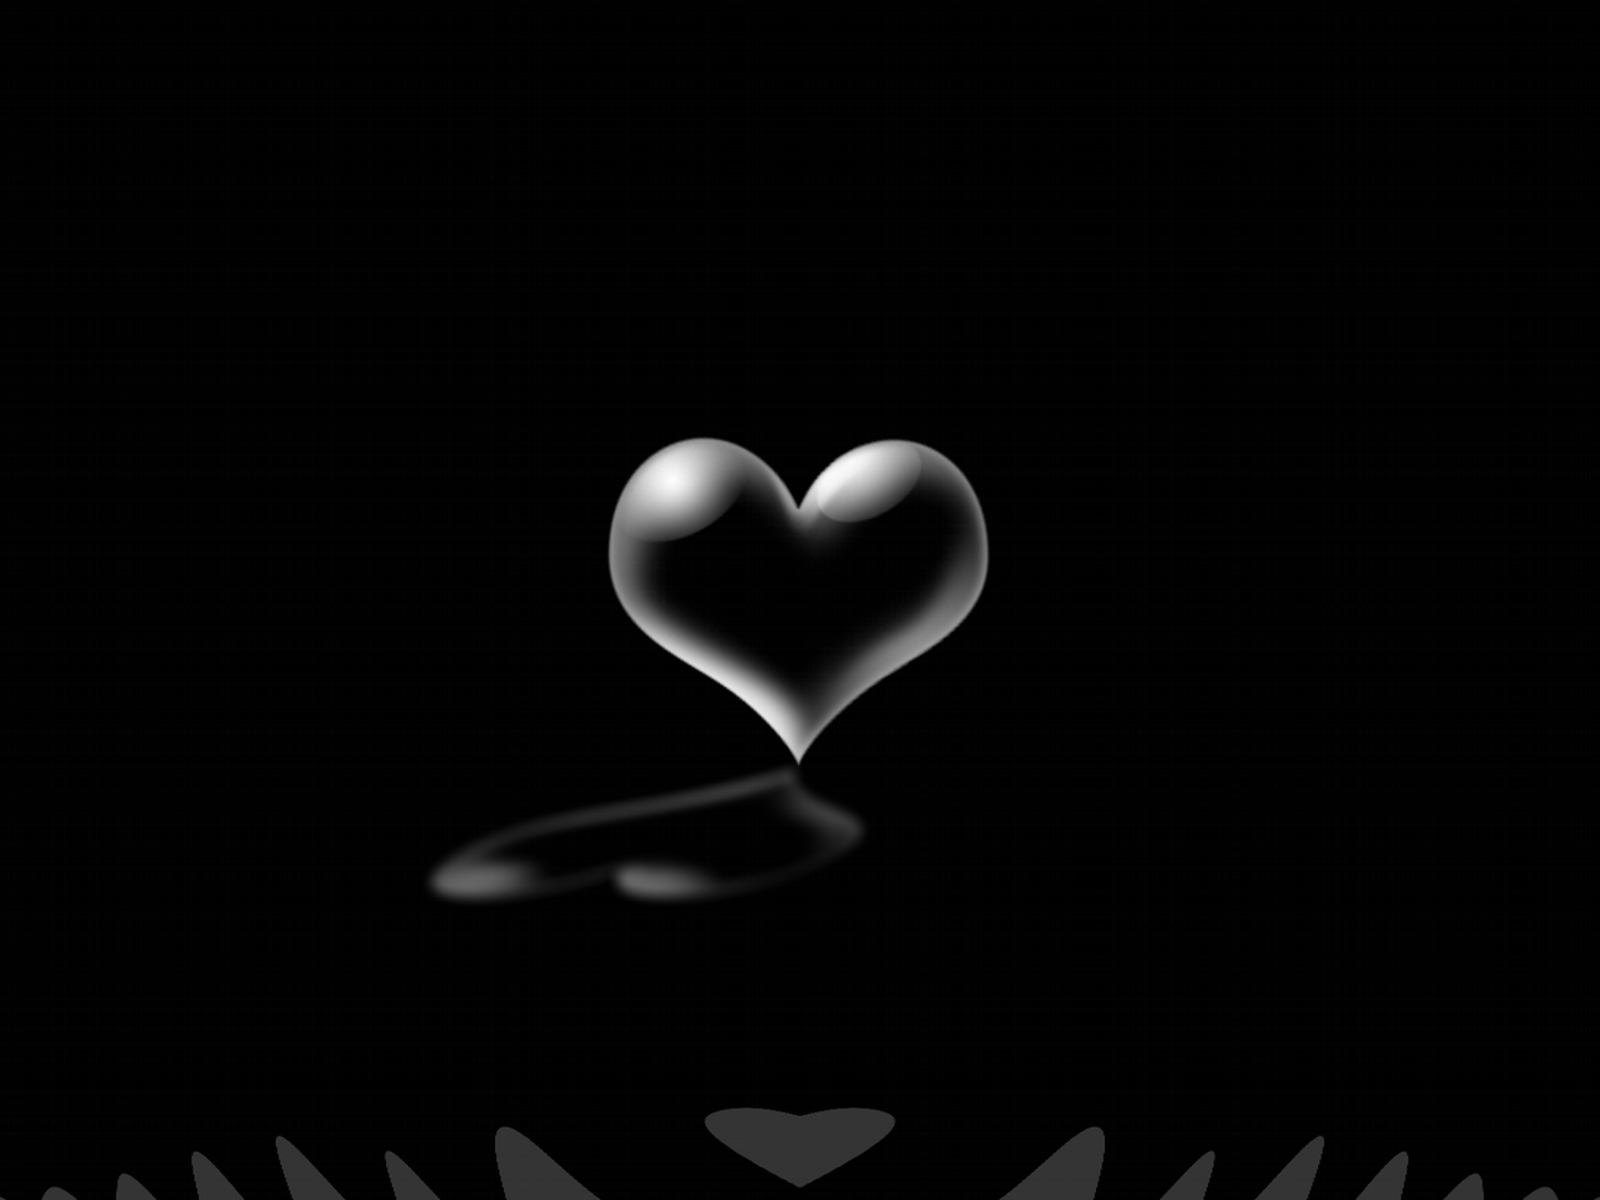 Black Heart Heart Wallpaper Black Heart Black Love